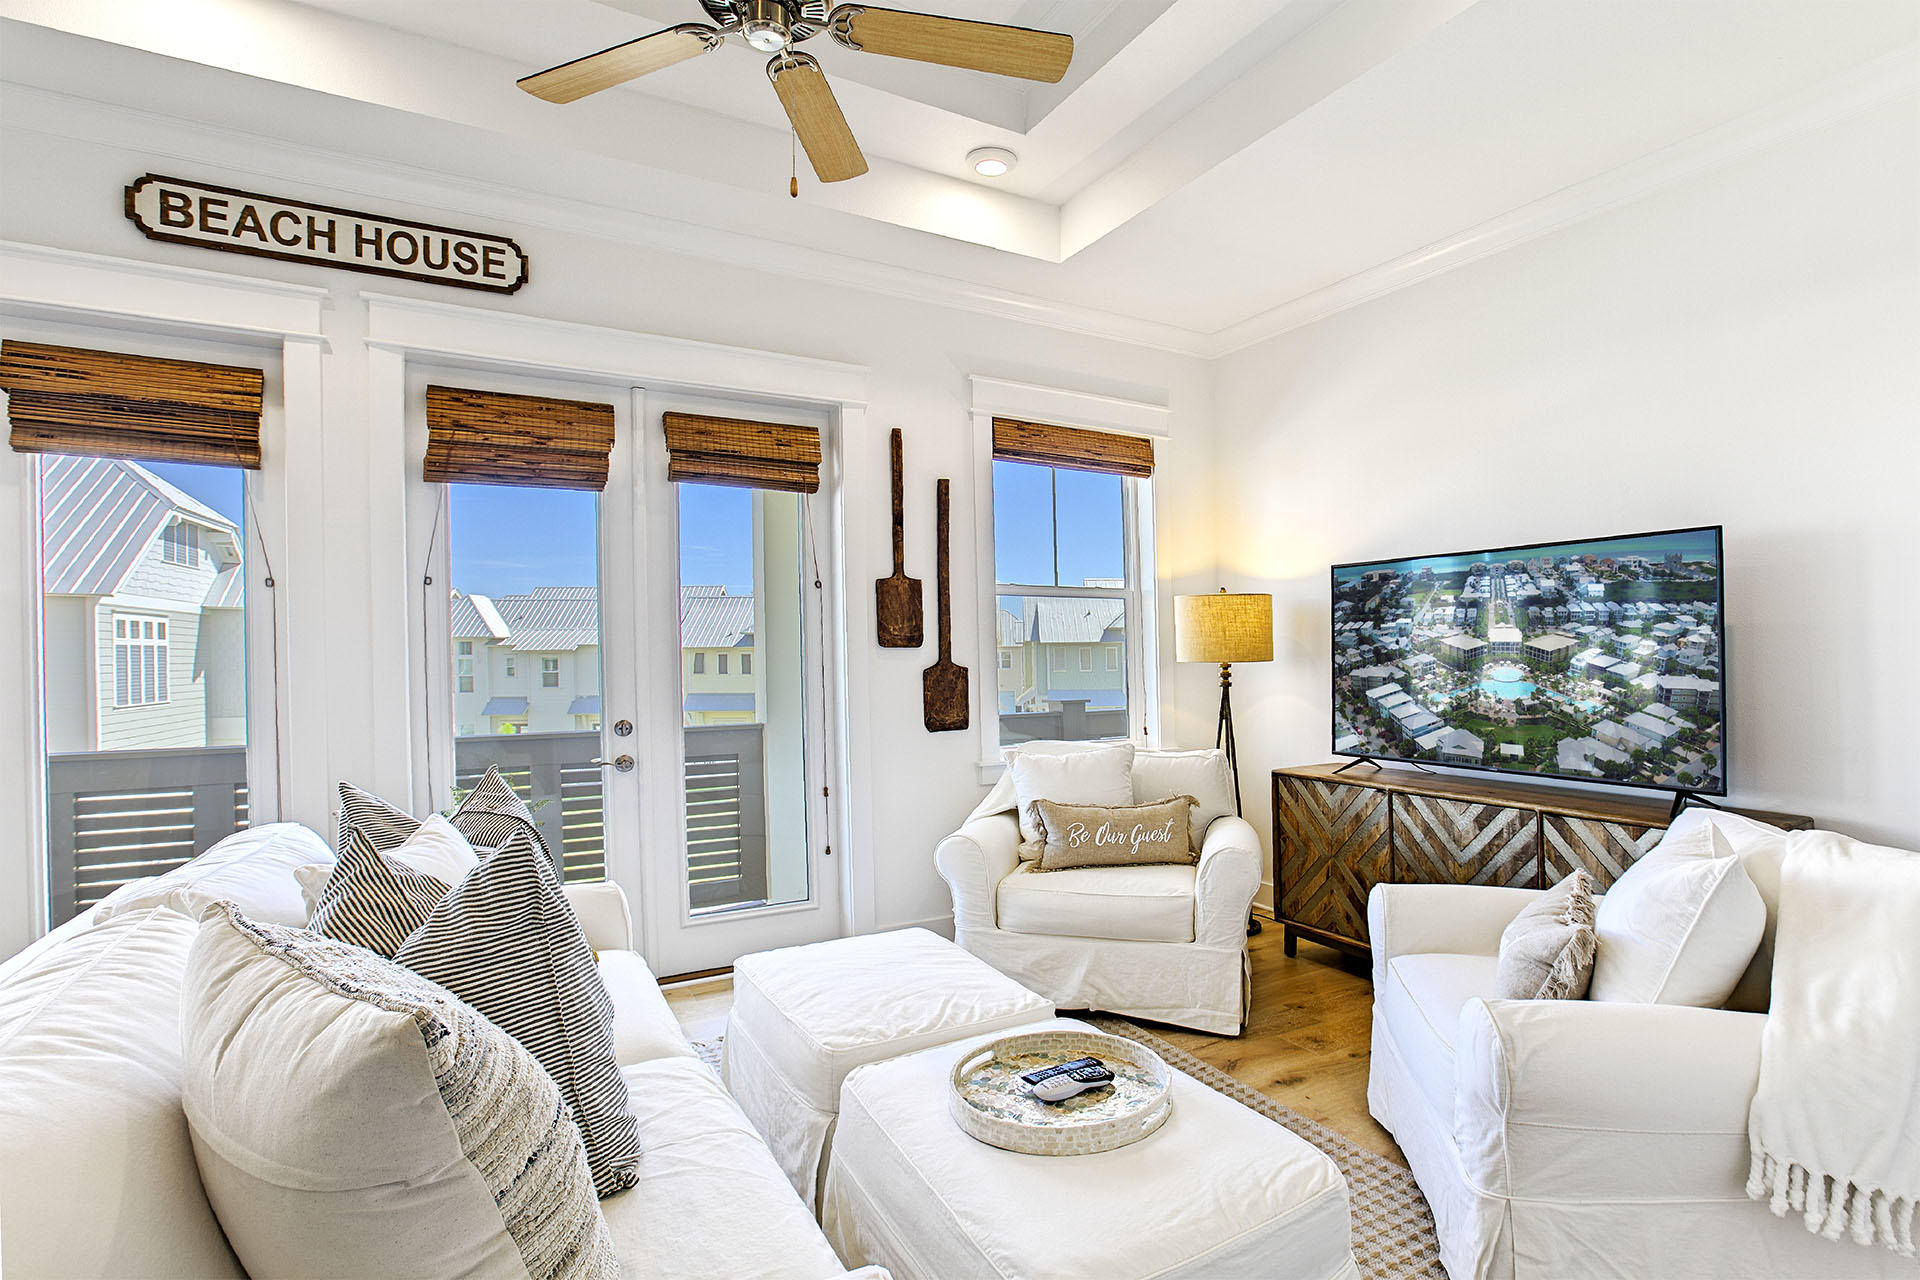 SeaSet Skies is a gorgeous, fully furnished, turnkey luxury townhome located at the Prominence resor